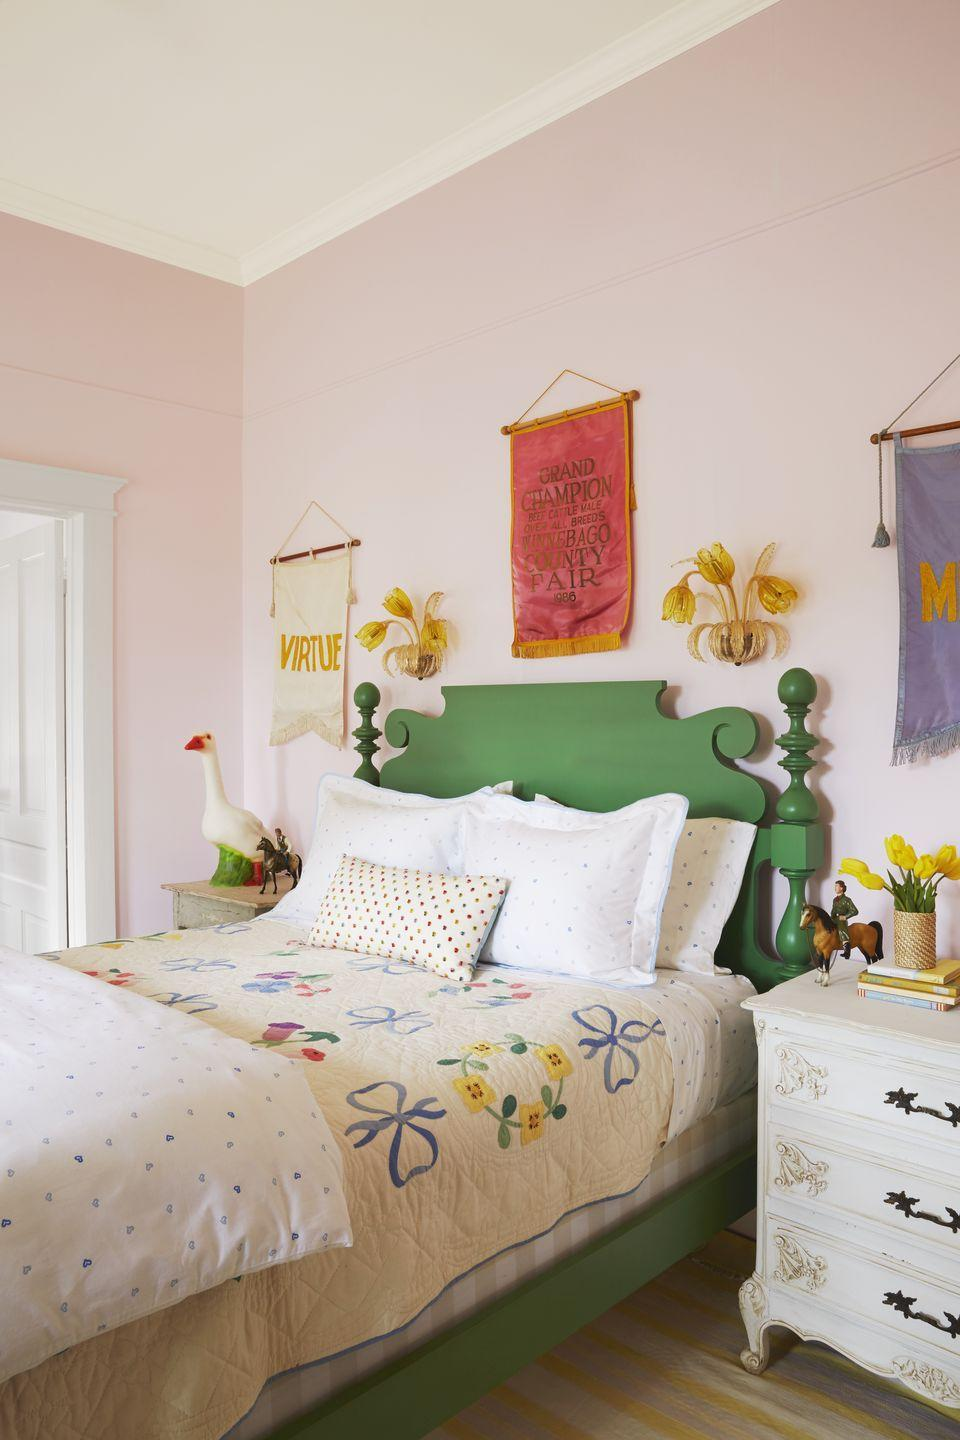 """<p><a href=""""https://www.biscuit-home.com/"""" rel=""""nofollow noopener"""" target=""""_blank"""" data-ylk=""""slk:Designer Bailey McCarthy"""" class=""""link rapid-noclick-resp"""">Designer Bailey McCarthy</a> embraced her love of pink and green full tilt by painting the walls in her daughter's room a soft shade of the former and choosing a traditional country bed frame in a leafy shade of the latter. An antique quilt looks surprisingly modern when paired with <a href=""""https://www.biscuit-home.com/products/grace-duvet-pale-blue-blue"""" rel=""""nofollow noopener"""" target=""""_blank"""" data-ylk=""""slk:graphic heart print bedding"""" class=""""link rapid-noclick-resp"""">graphic heart print bedding</a> from her Biscuit Home line. Vintage finds, like the Murano glass tulip wall sconces and the silk county fair banners hanging above the bed, infuse the grown-up-worthy child's bedroom with personality.</p><p><strong>Get the Look: </strong><br>Wall Paint Color: <a href=""""https://go.redirectingat.com?id=74968X1596630&url=https%3A%2F%2Fwww.farrow-ball.com%2Fen-us%2Fpaint-colours%2Fmiddleton-pink&sref=https%3A%2F%2Fwww.countryliving.com%2Fremodeling-renovation%2Fhome-makeovers%2Fg32468539%2Fbest-bedroom-paint-colors-ideas%2F"""" rel=""""nofollow noopener"""" target=""""_blank"""" data-ylk=""""slk:Middleton Pink by Farrow & Ball"""" class=""""link rapid-noclick-resp"""">Middleton Pink by Farrow & Ball</a></p>"""